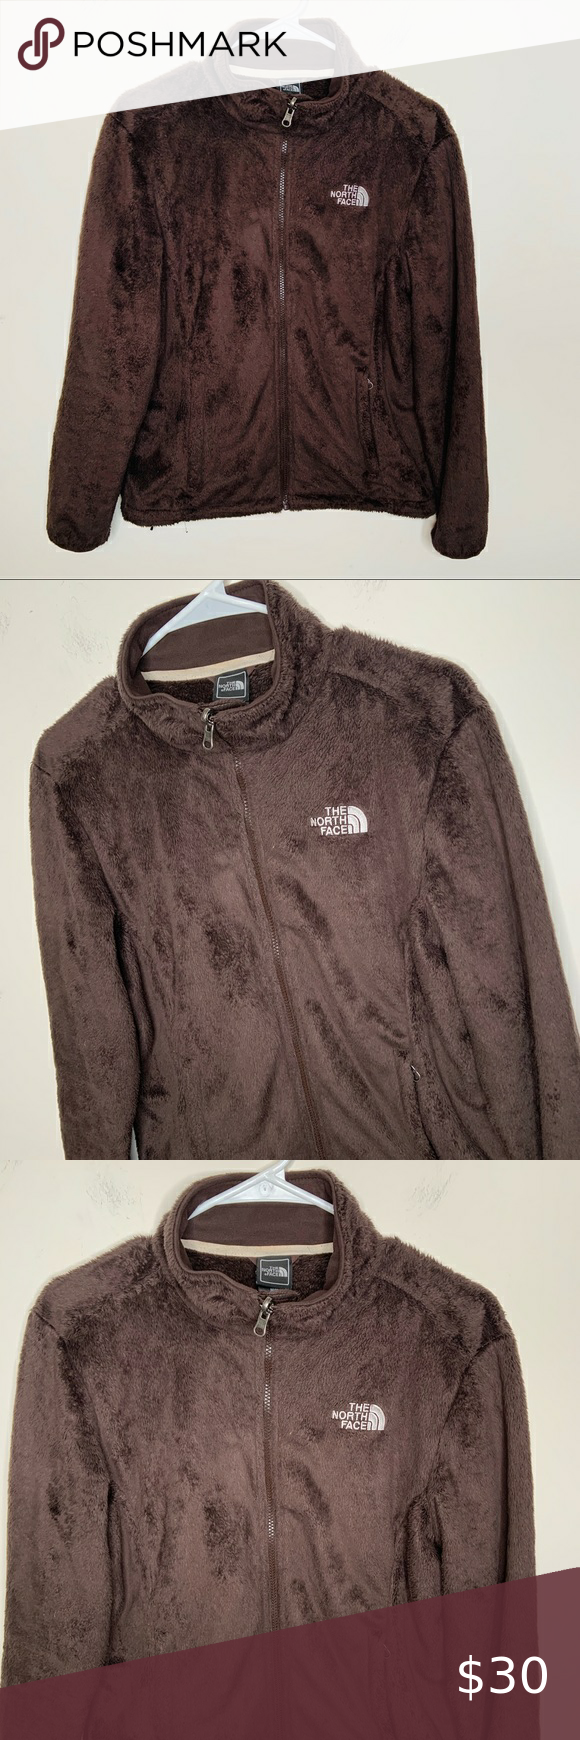 The North Face Brown Full Zipper Fuzzy Jacket M Fuzzy Jacket Jackets The North Face [ 1740 x 580 Pixel ]